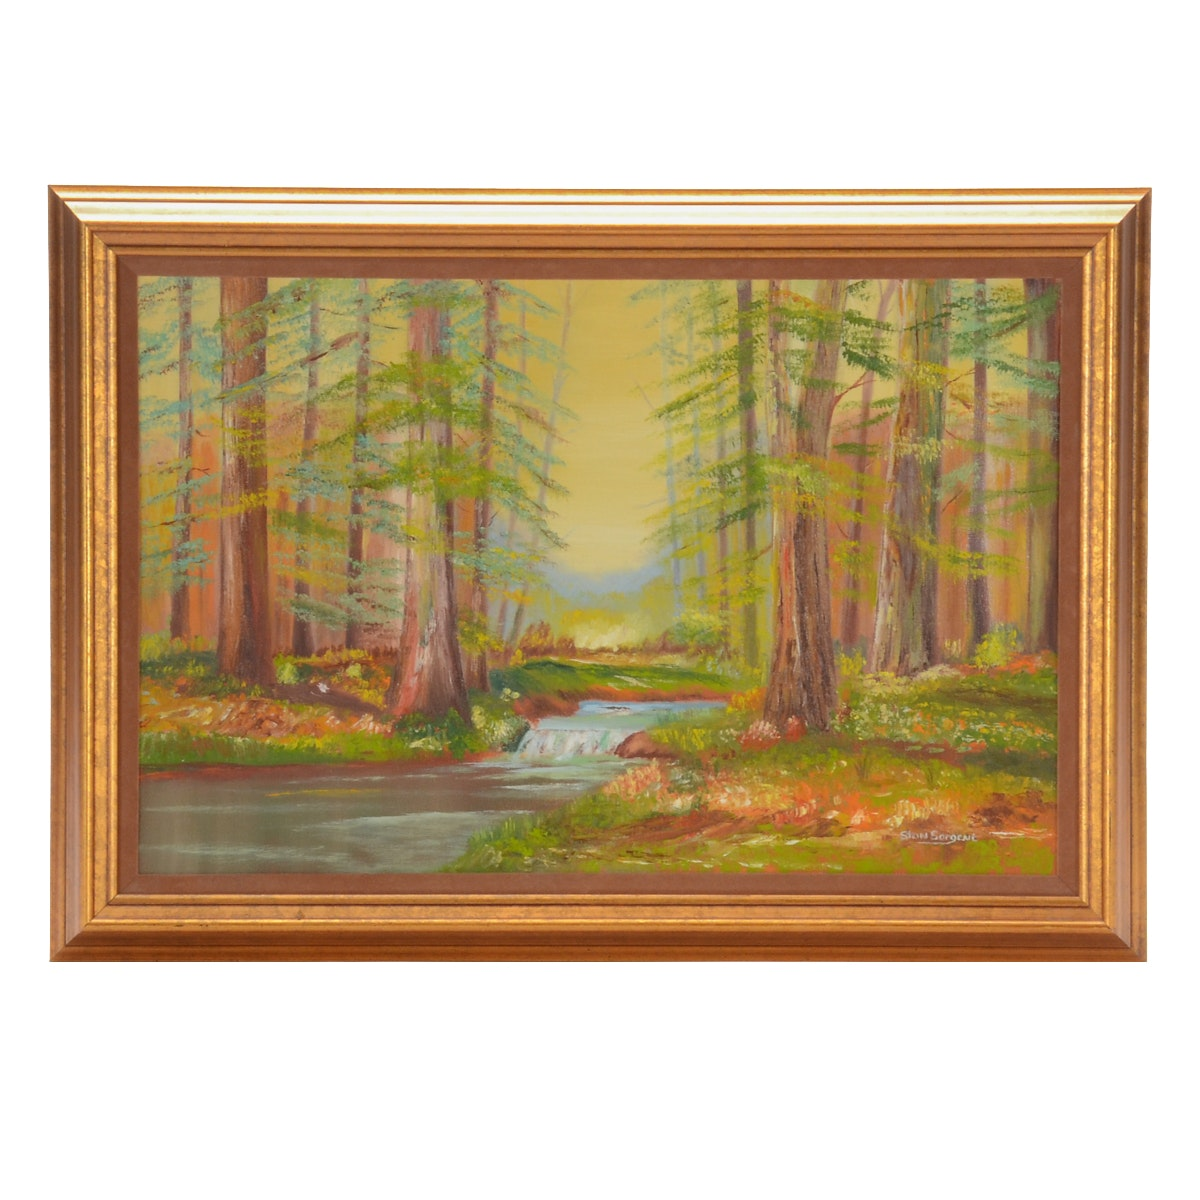 Stan Sargent Oil Painting on Canvas of Forest Landscape